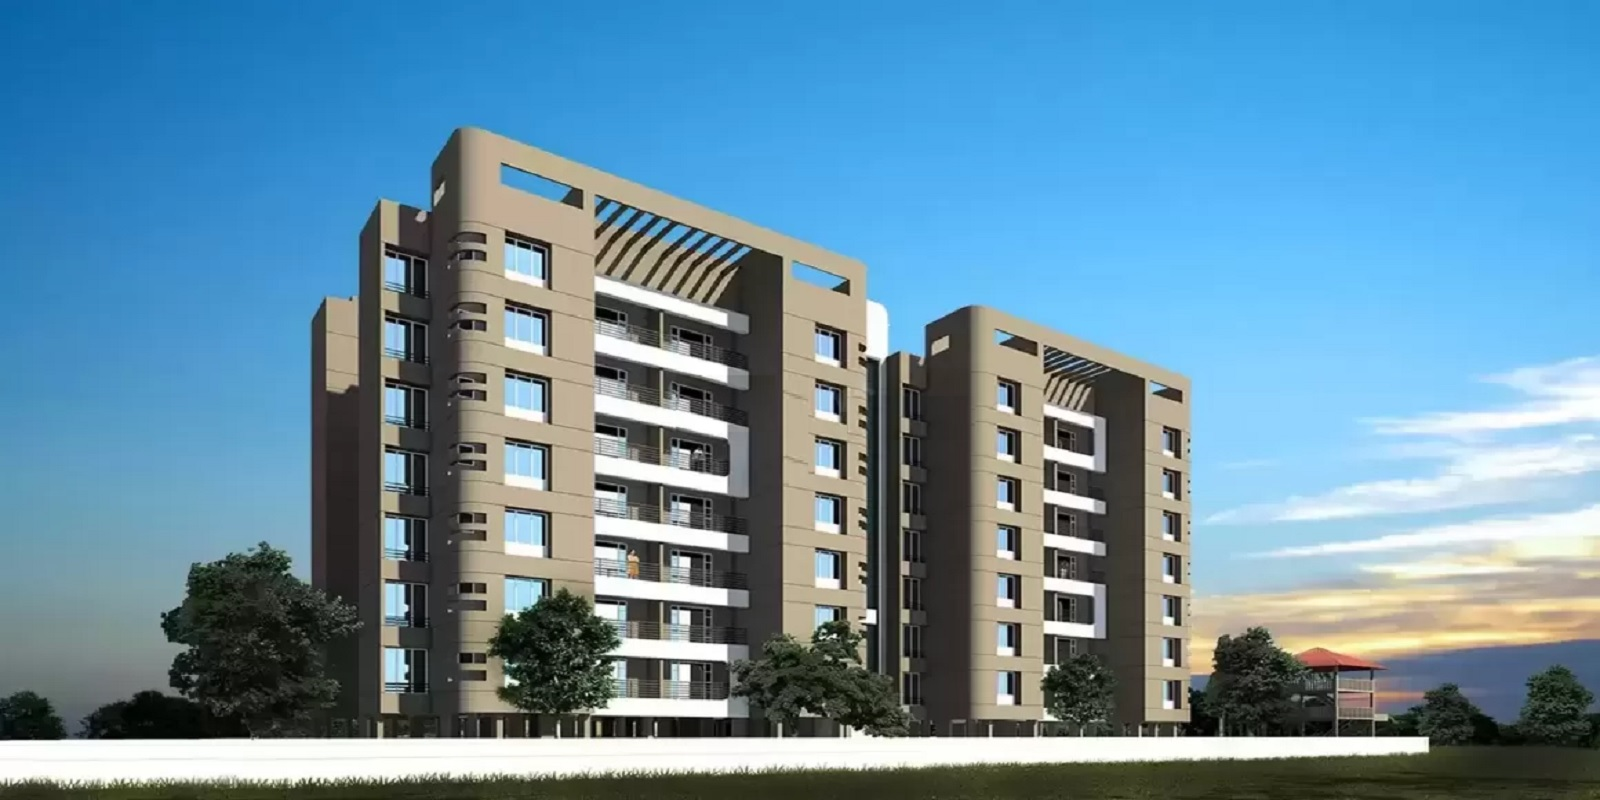 bhujbal quadra town project project large image1